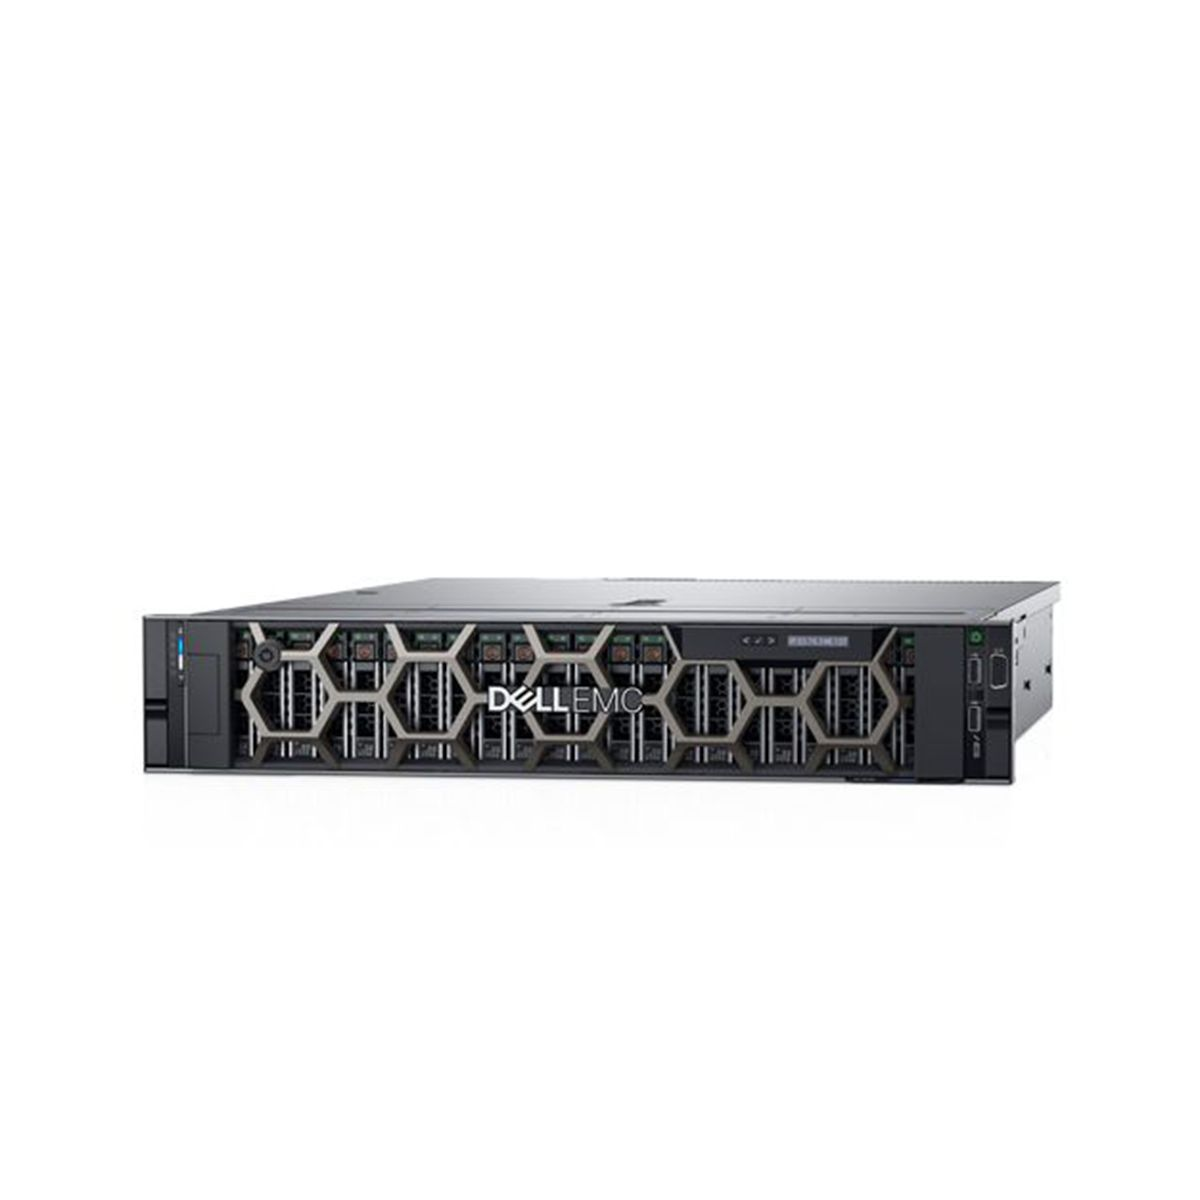 Servidor para rack PowerEdge R7515